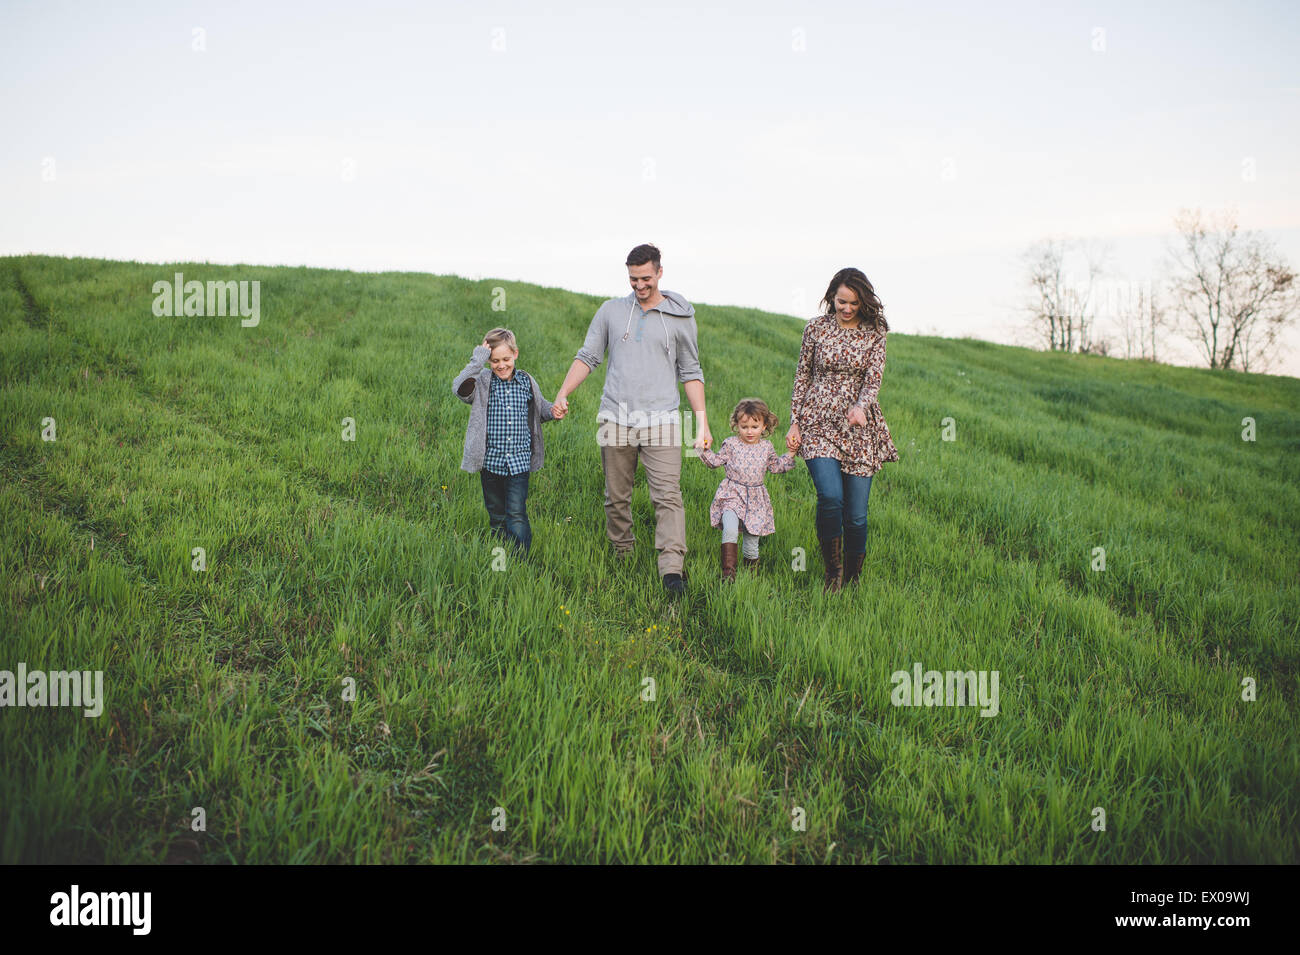 Parents with son and daughter strolling in grassy field Stock Photo